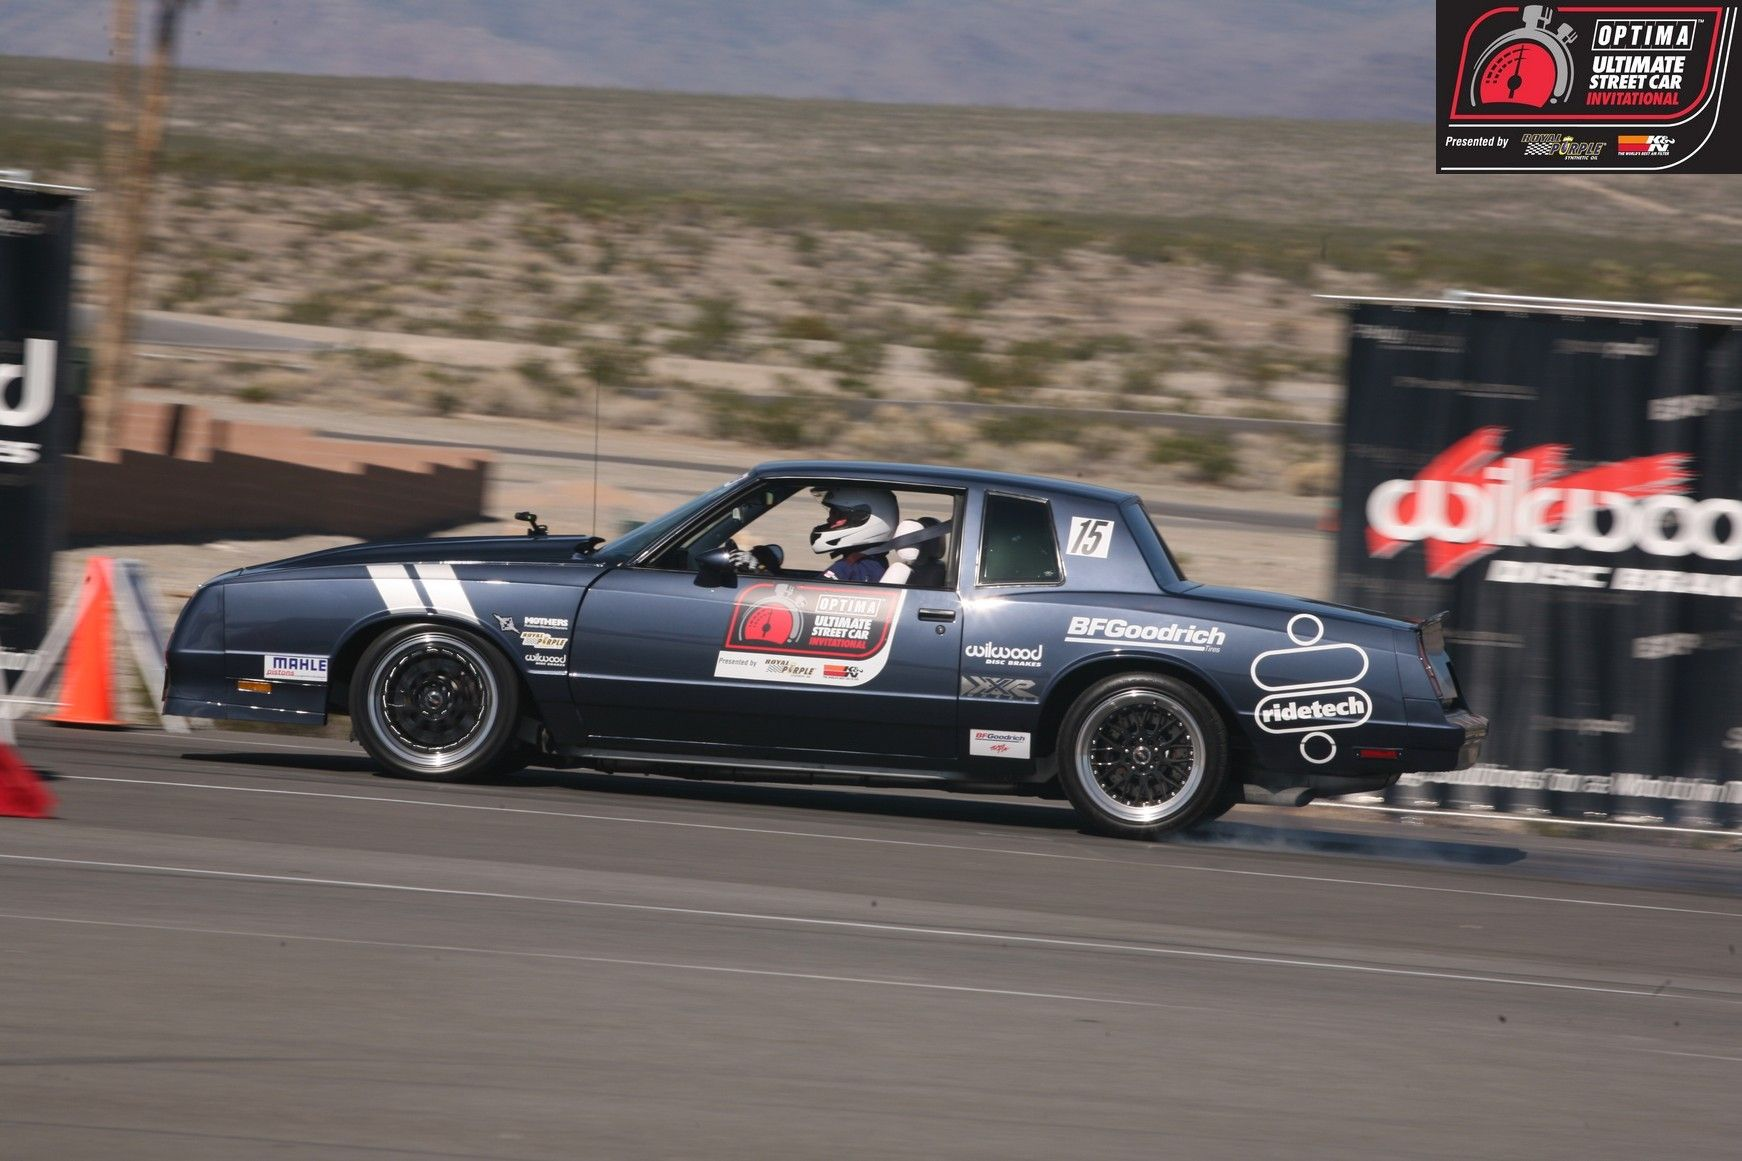 Dan Howe's 1984 Chevy Monte Carlo SS at the 2012 OPTIMA Ultimate Street Car Invitational. Learn more at www.OUSCI.com #OUSCI